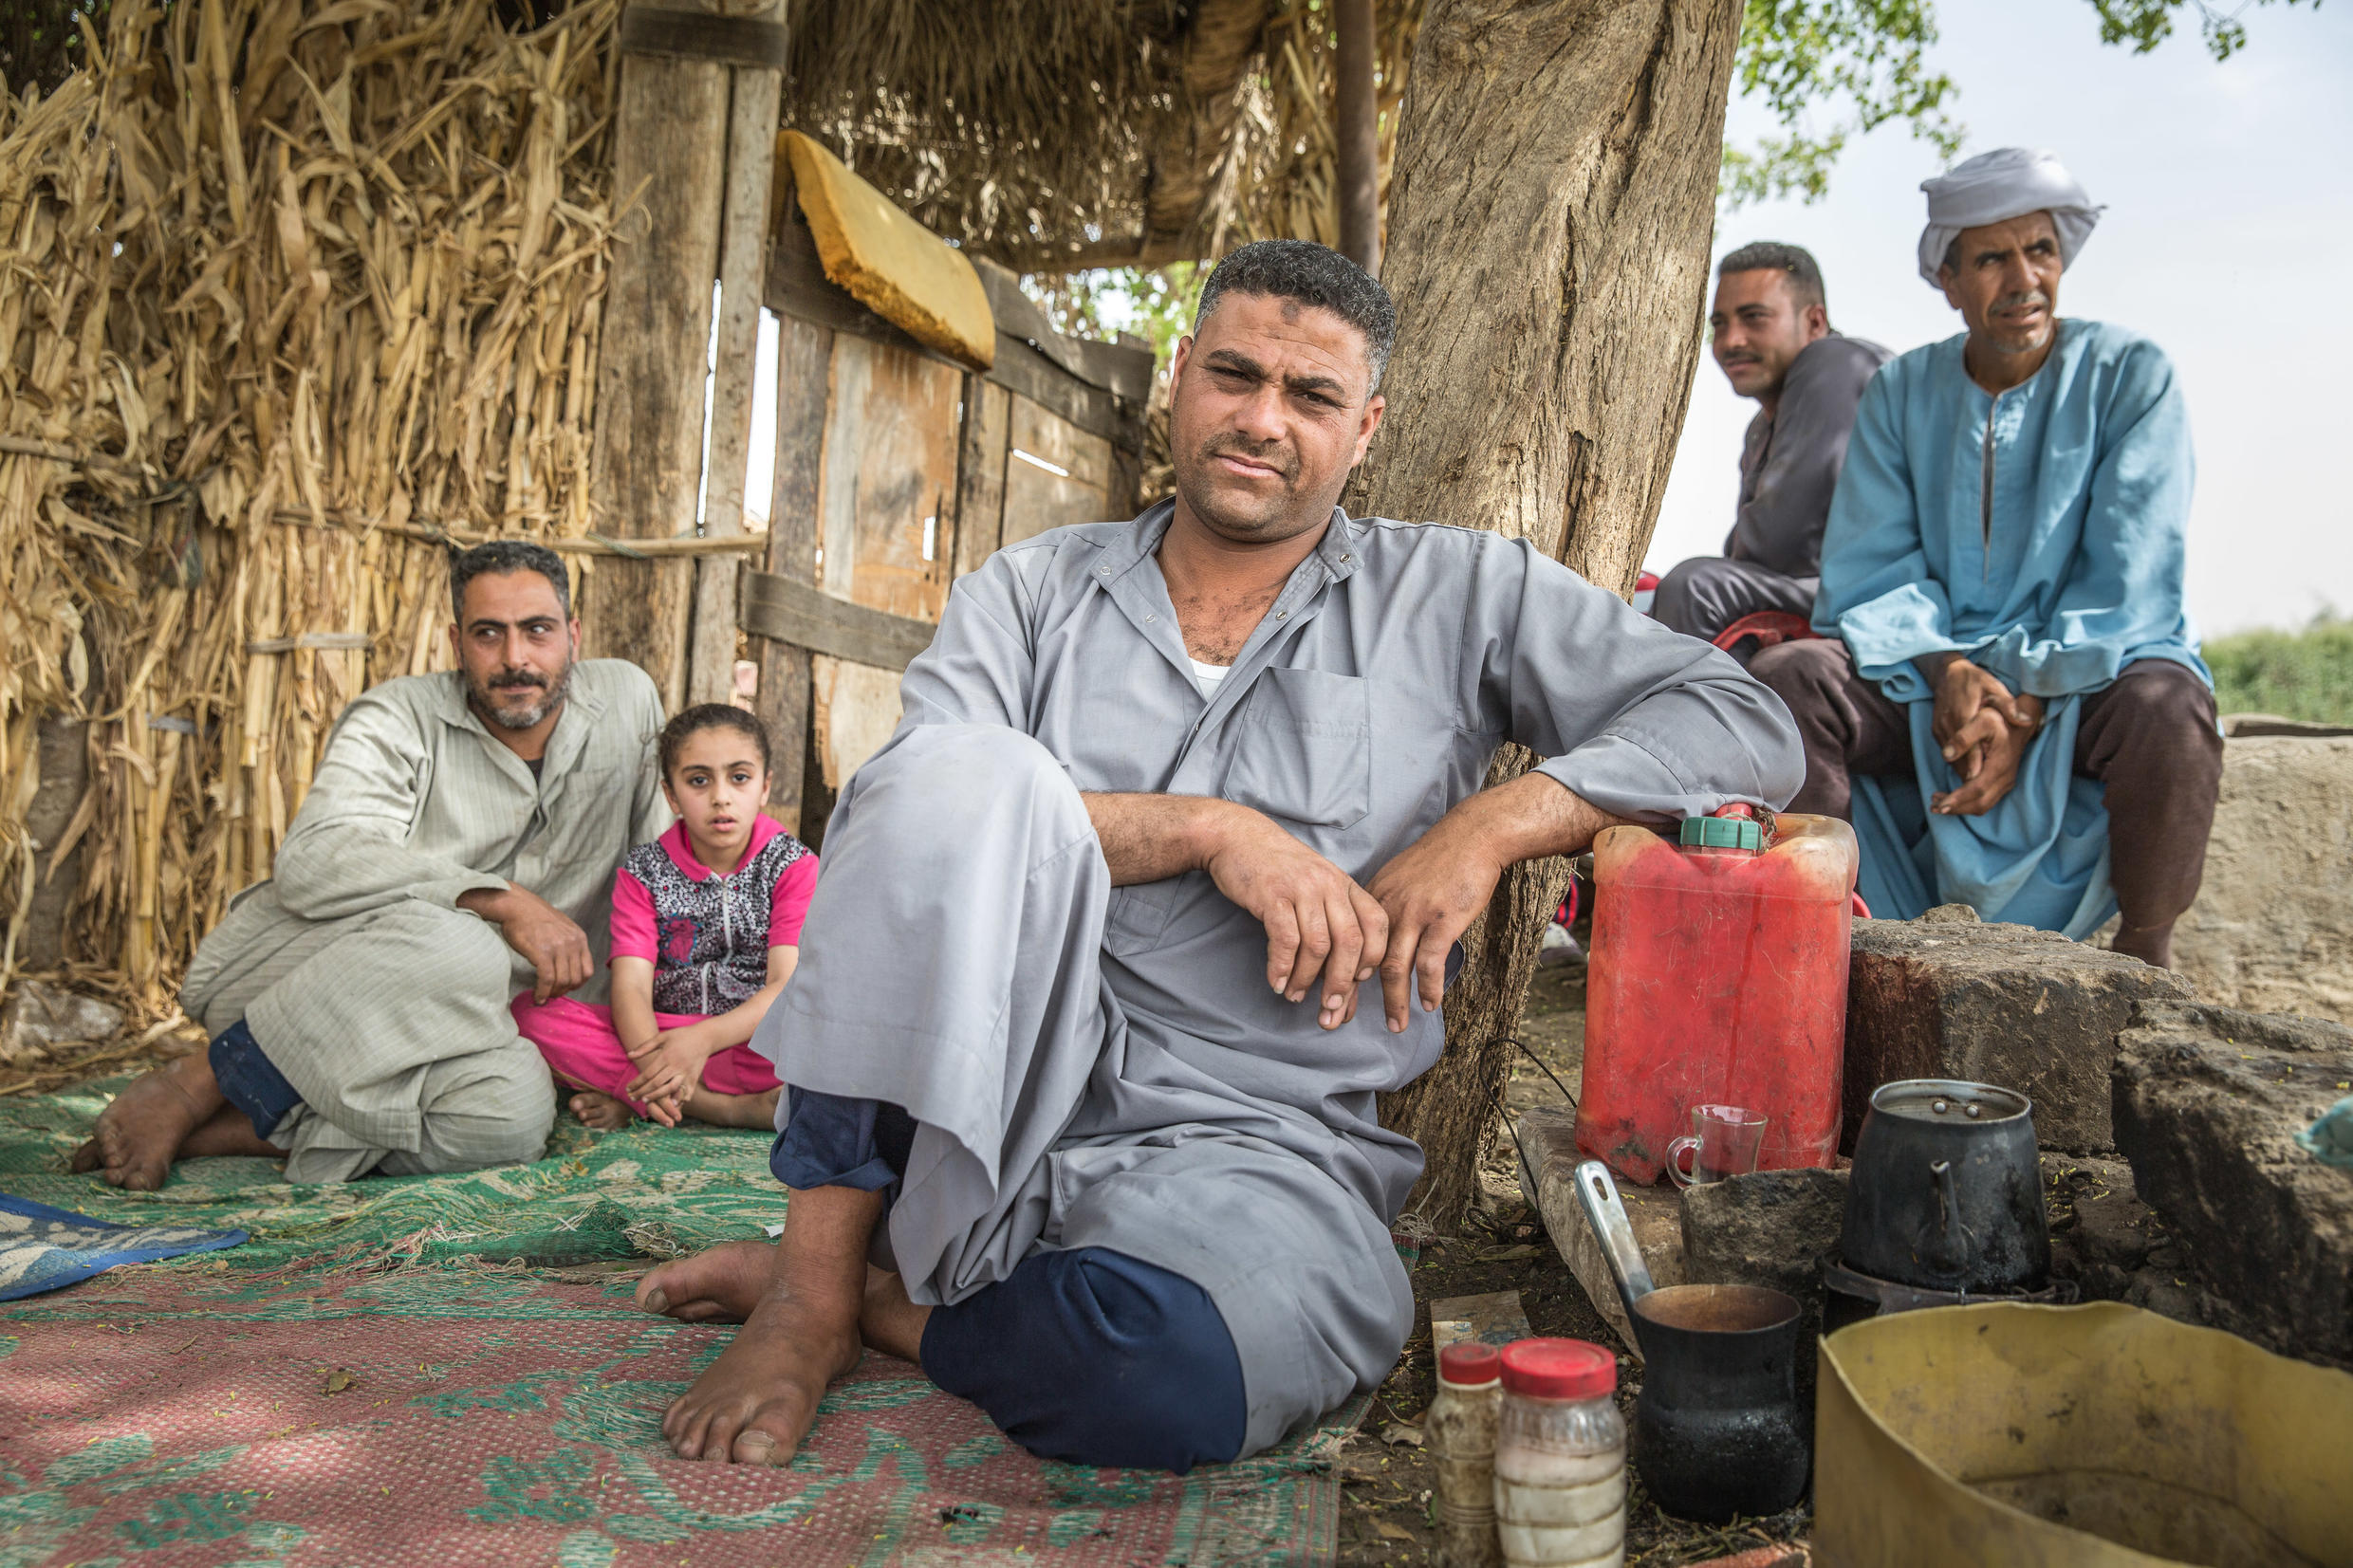 Family of farmers take a break in the Egyptian village of Riad Basha